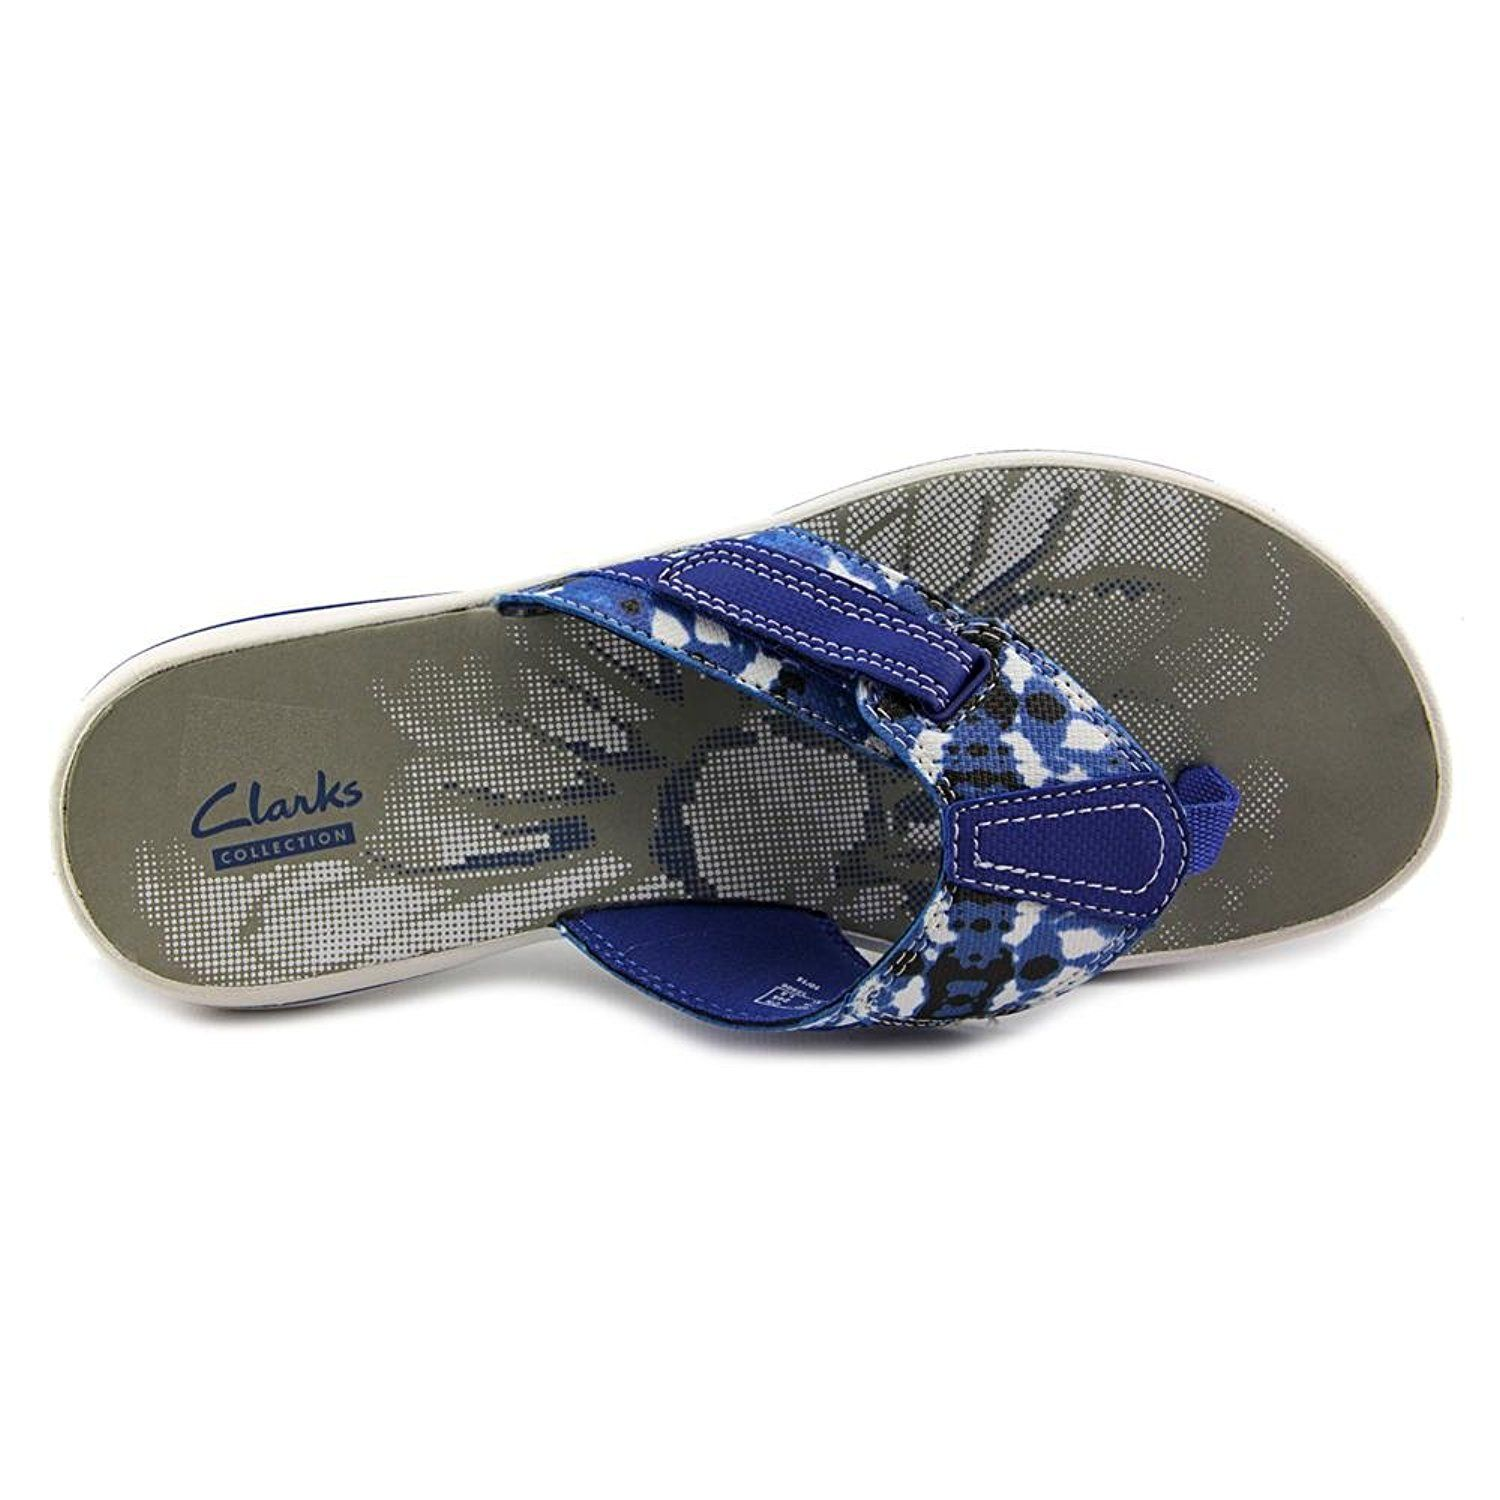 96a518c8064 Clarks Narrative Brinkley Jazz Women US 7 Blue Flip Flop Sandal -- To view  further for this item